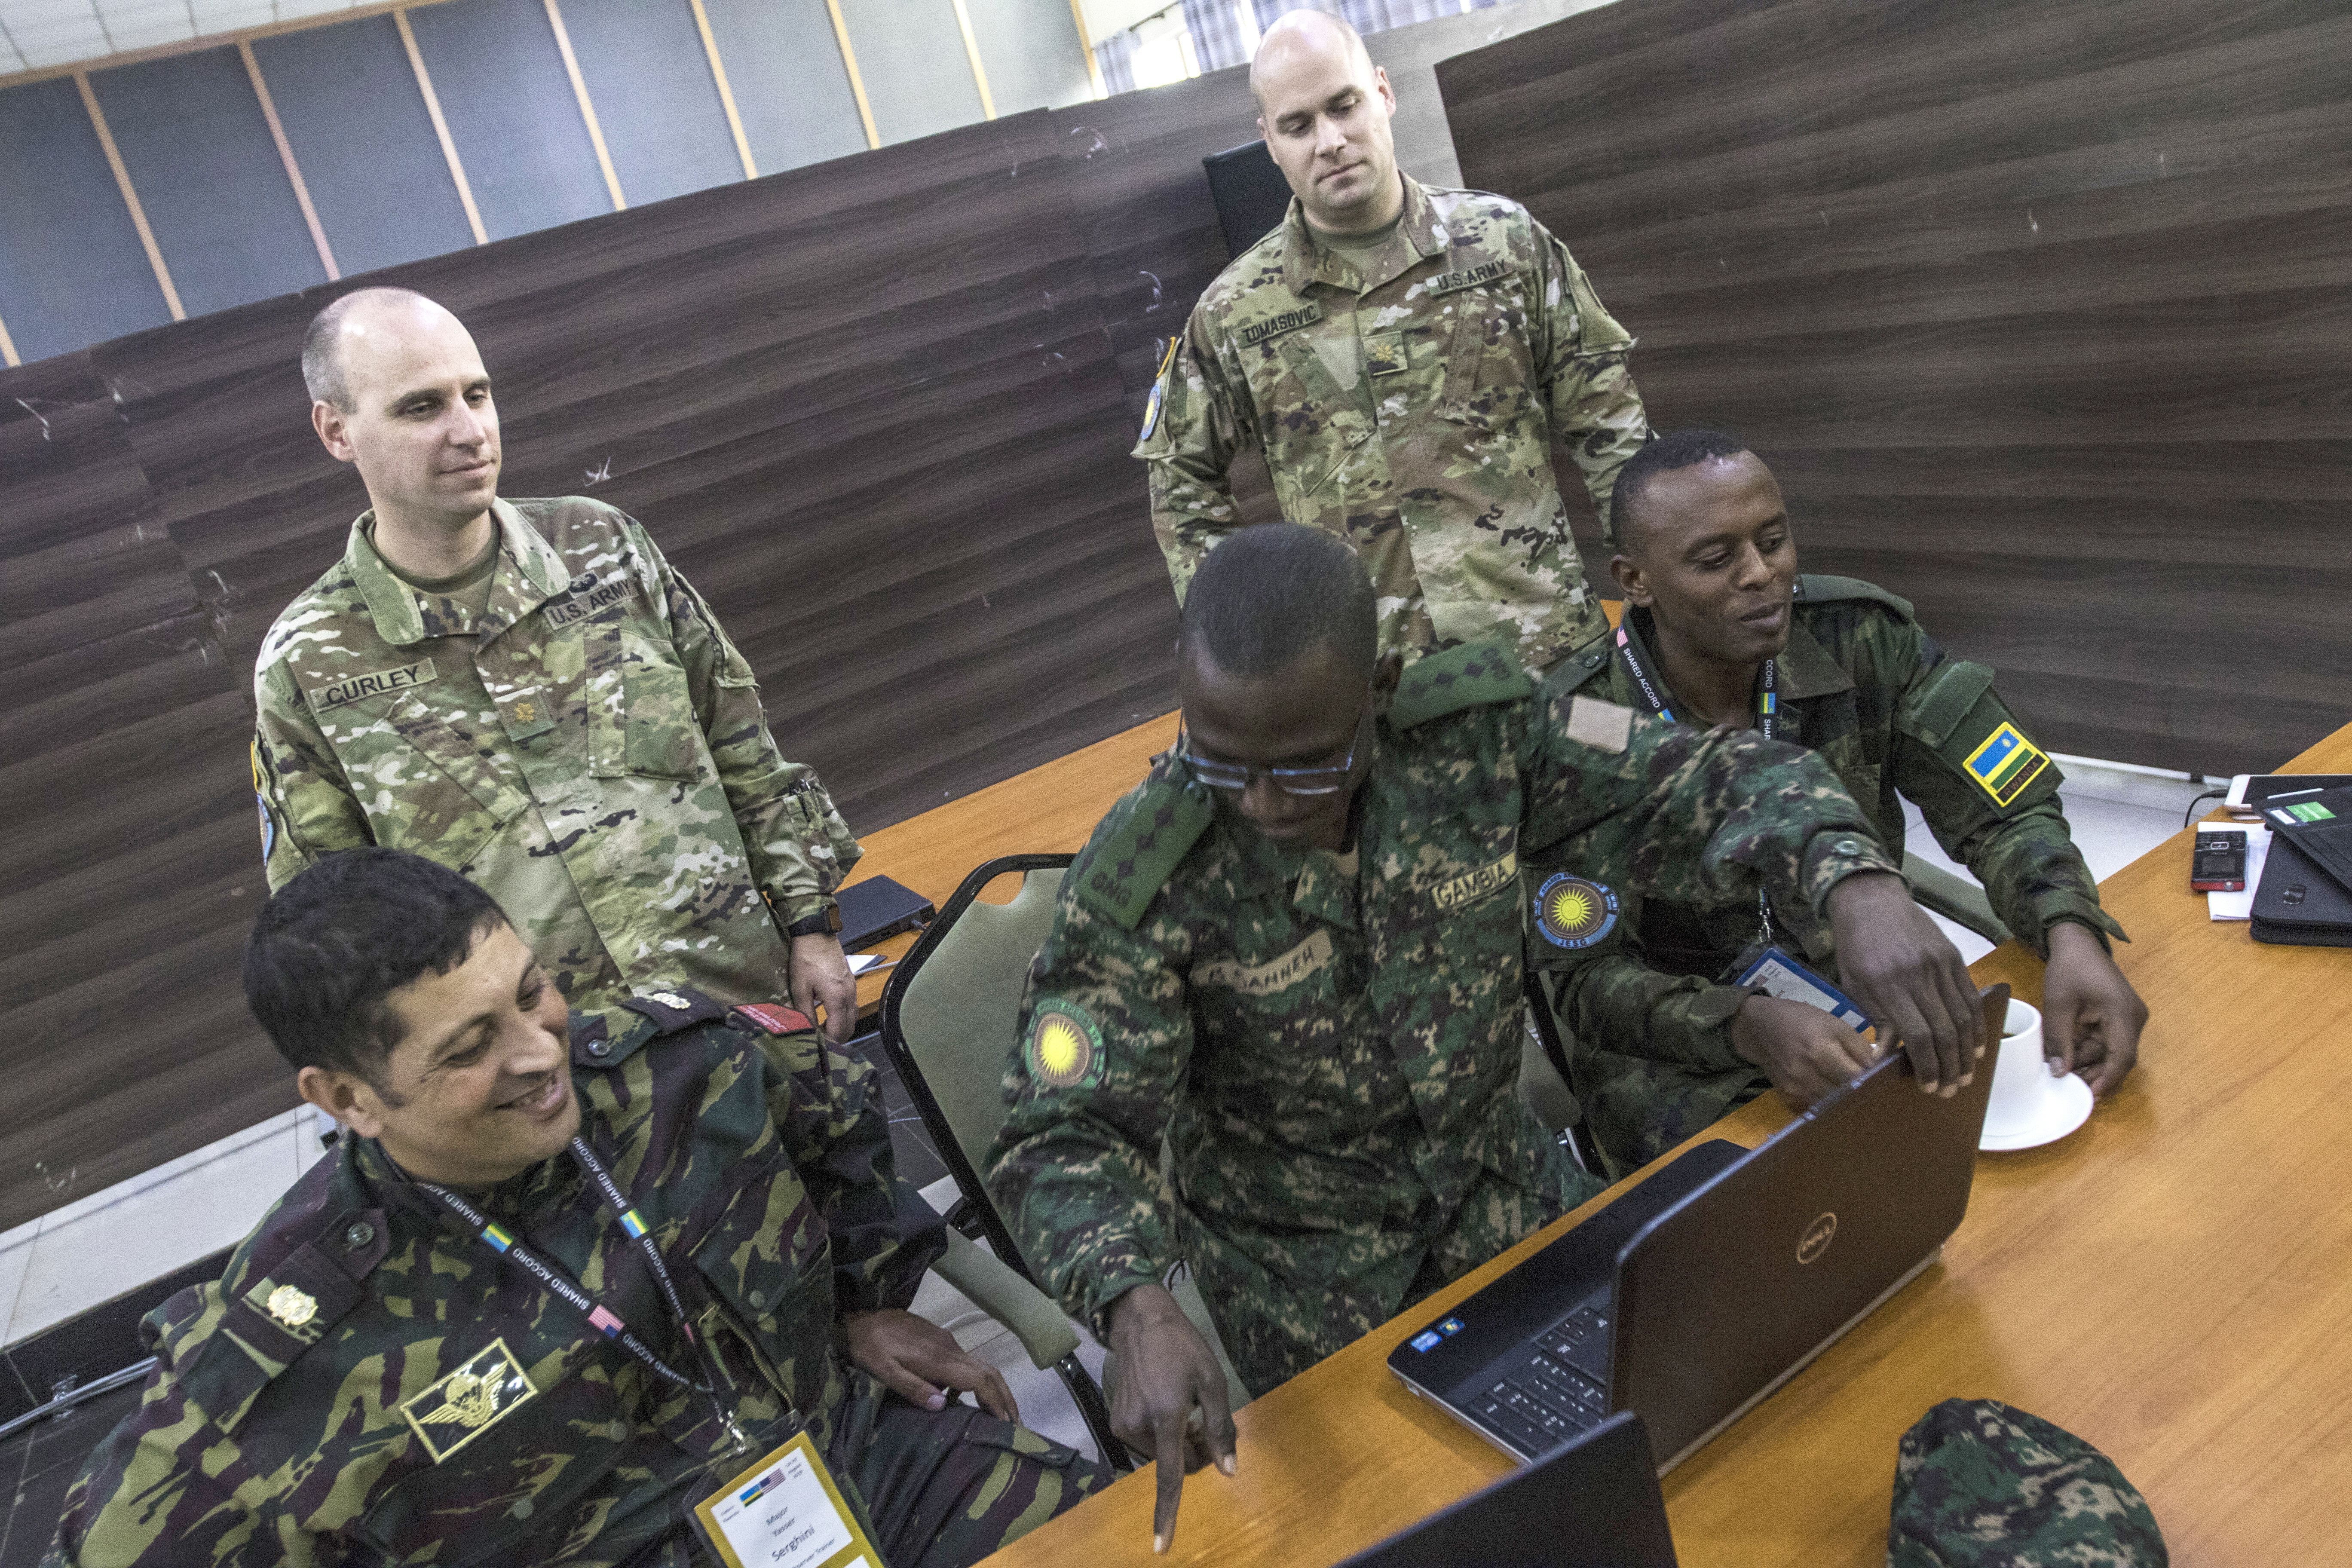 U.S. Army and African legal advisors participate in Shared Accord 19, a multinational military exercise which took place in and around the Rwanda Defense Force Gabiro Training Center, Rwanda, Aug. 14-28, 2019. The exercise, sponsored by U.S. Africa Command and executed by U.S. Army Africa, the Rwanda Defence Force and other partner nations, seeks to improve the interoperability between vested stakeholders by enhancing the capacity and capability of Troop Contributing Counties to the Multidimensional Integrated Stabilization Mission in the Central African Republic. (U.S. Army photo by Sgt. Heather Doppke)